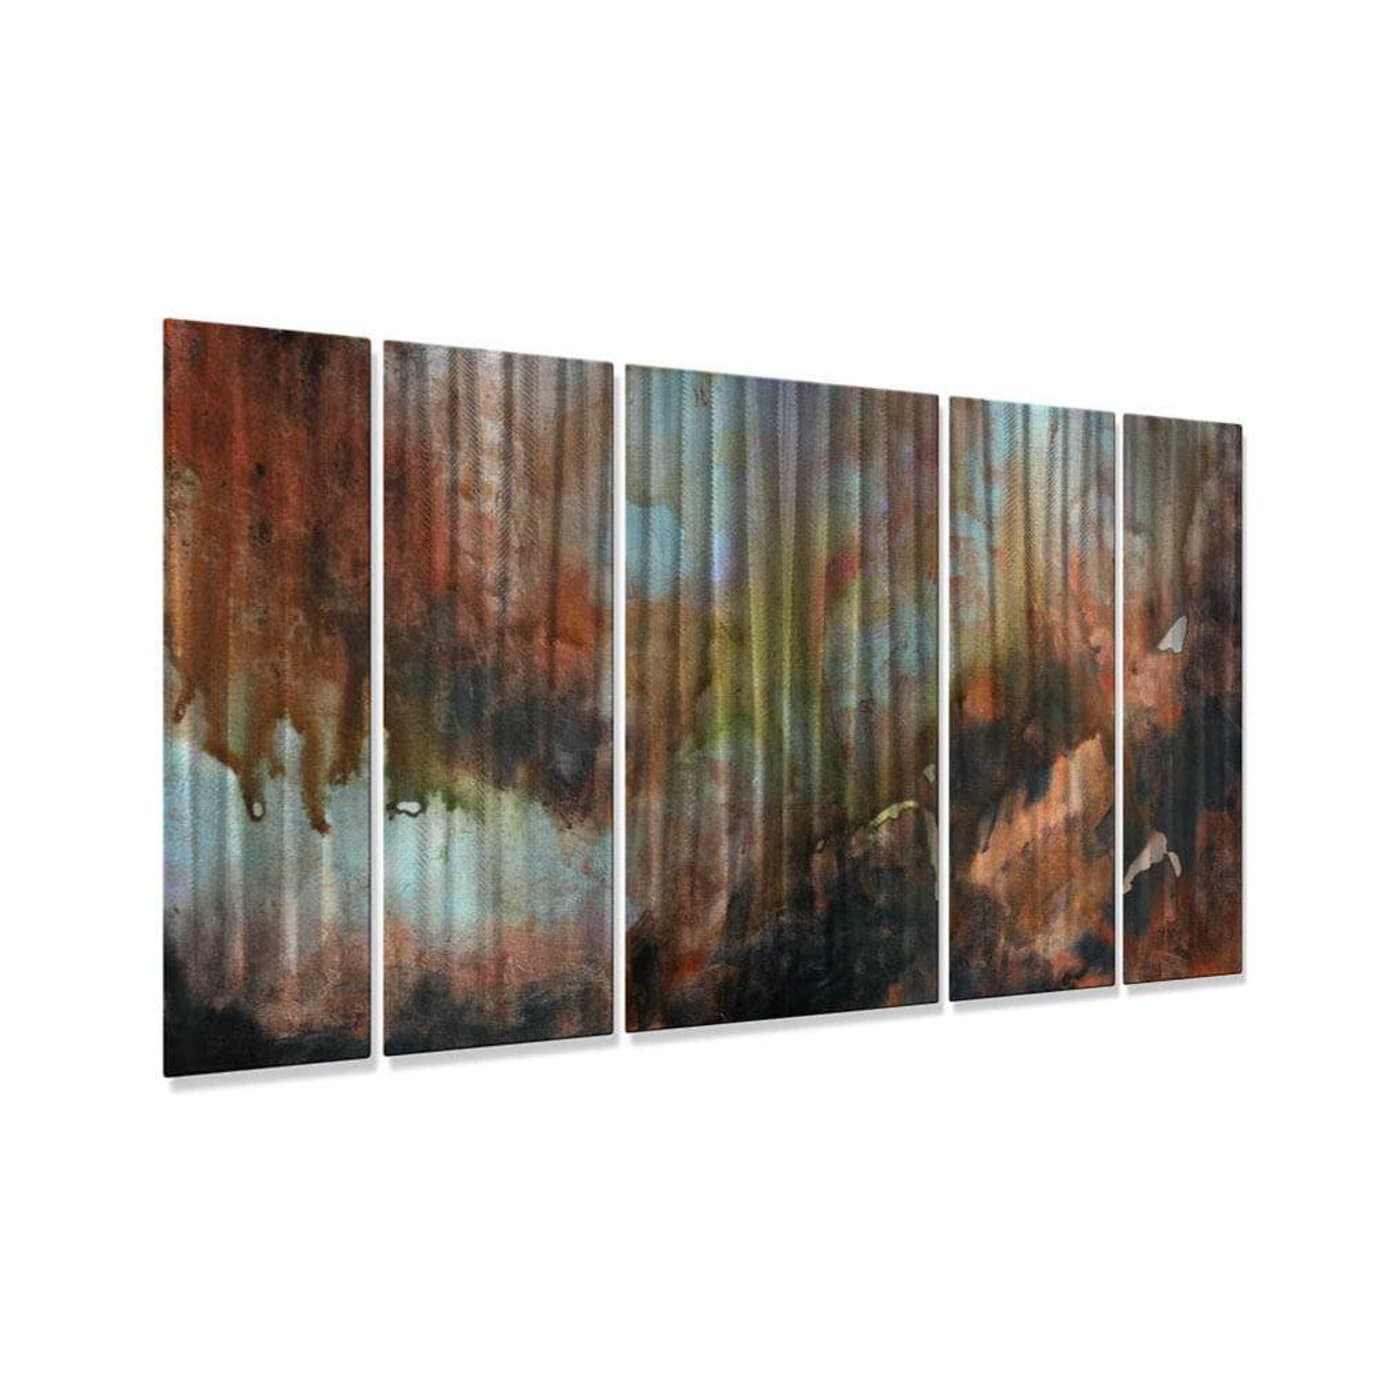 All-My-Walls-MAD00248